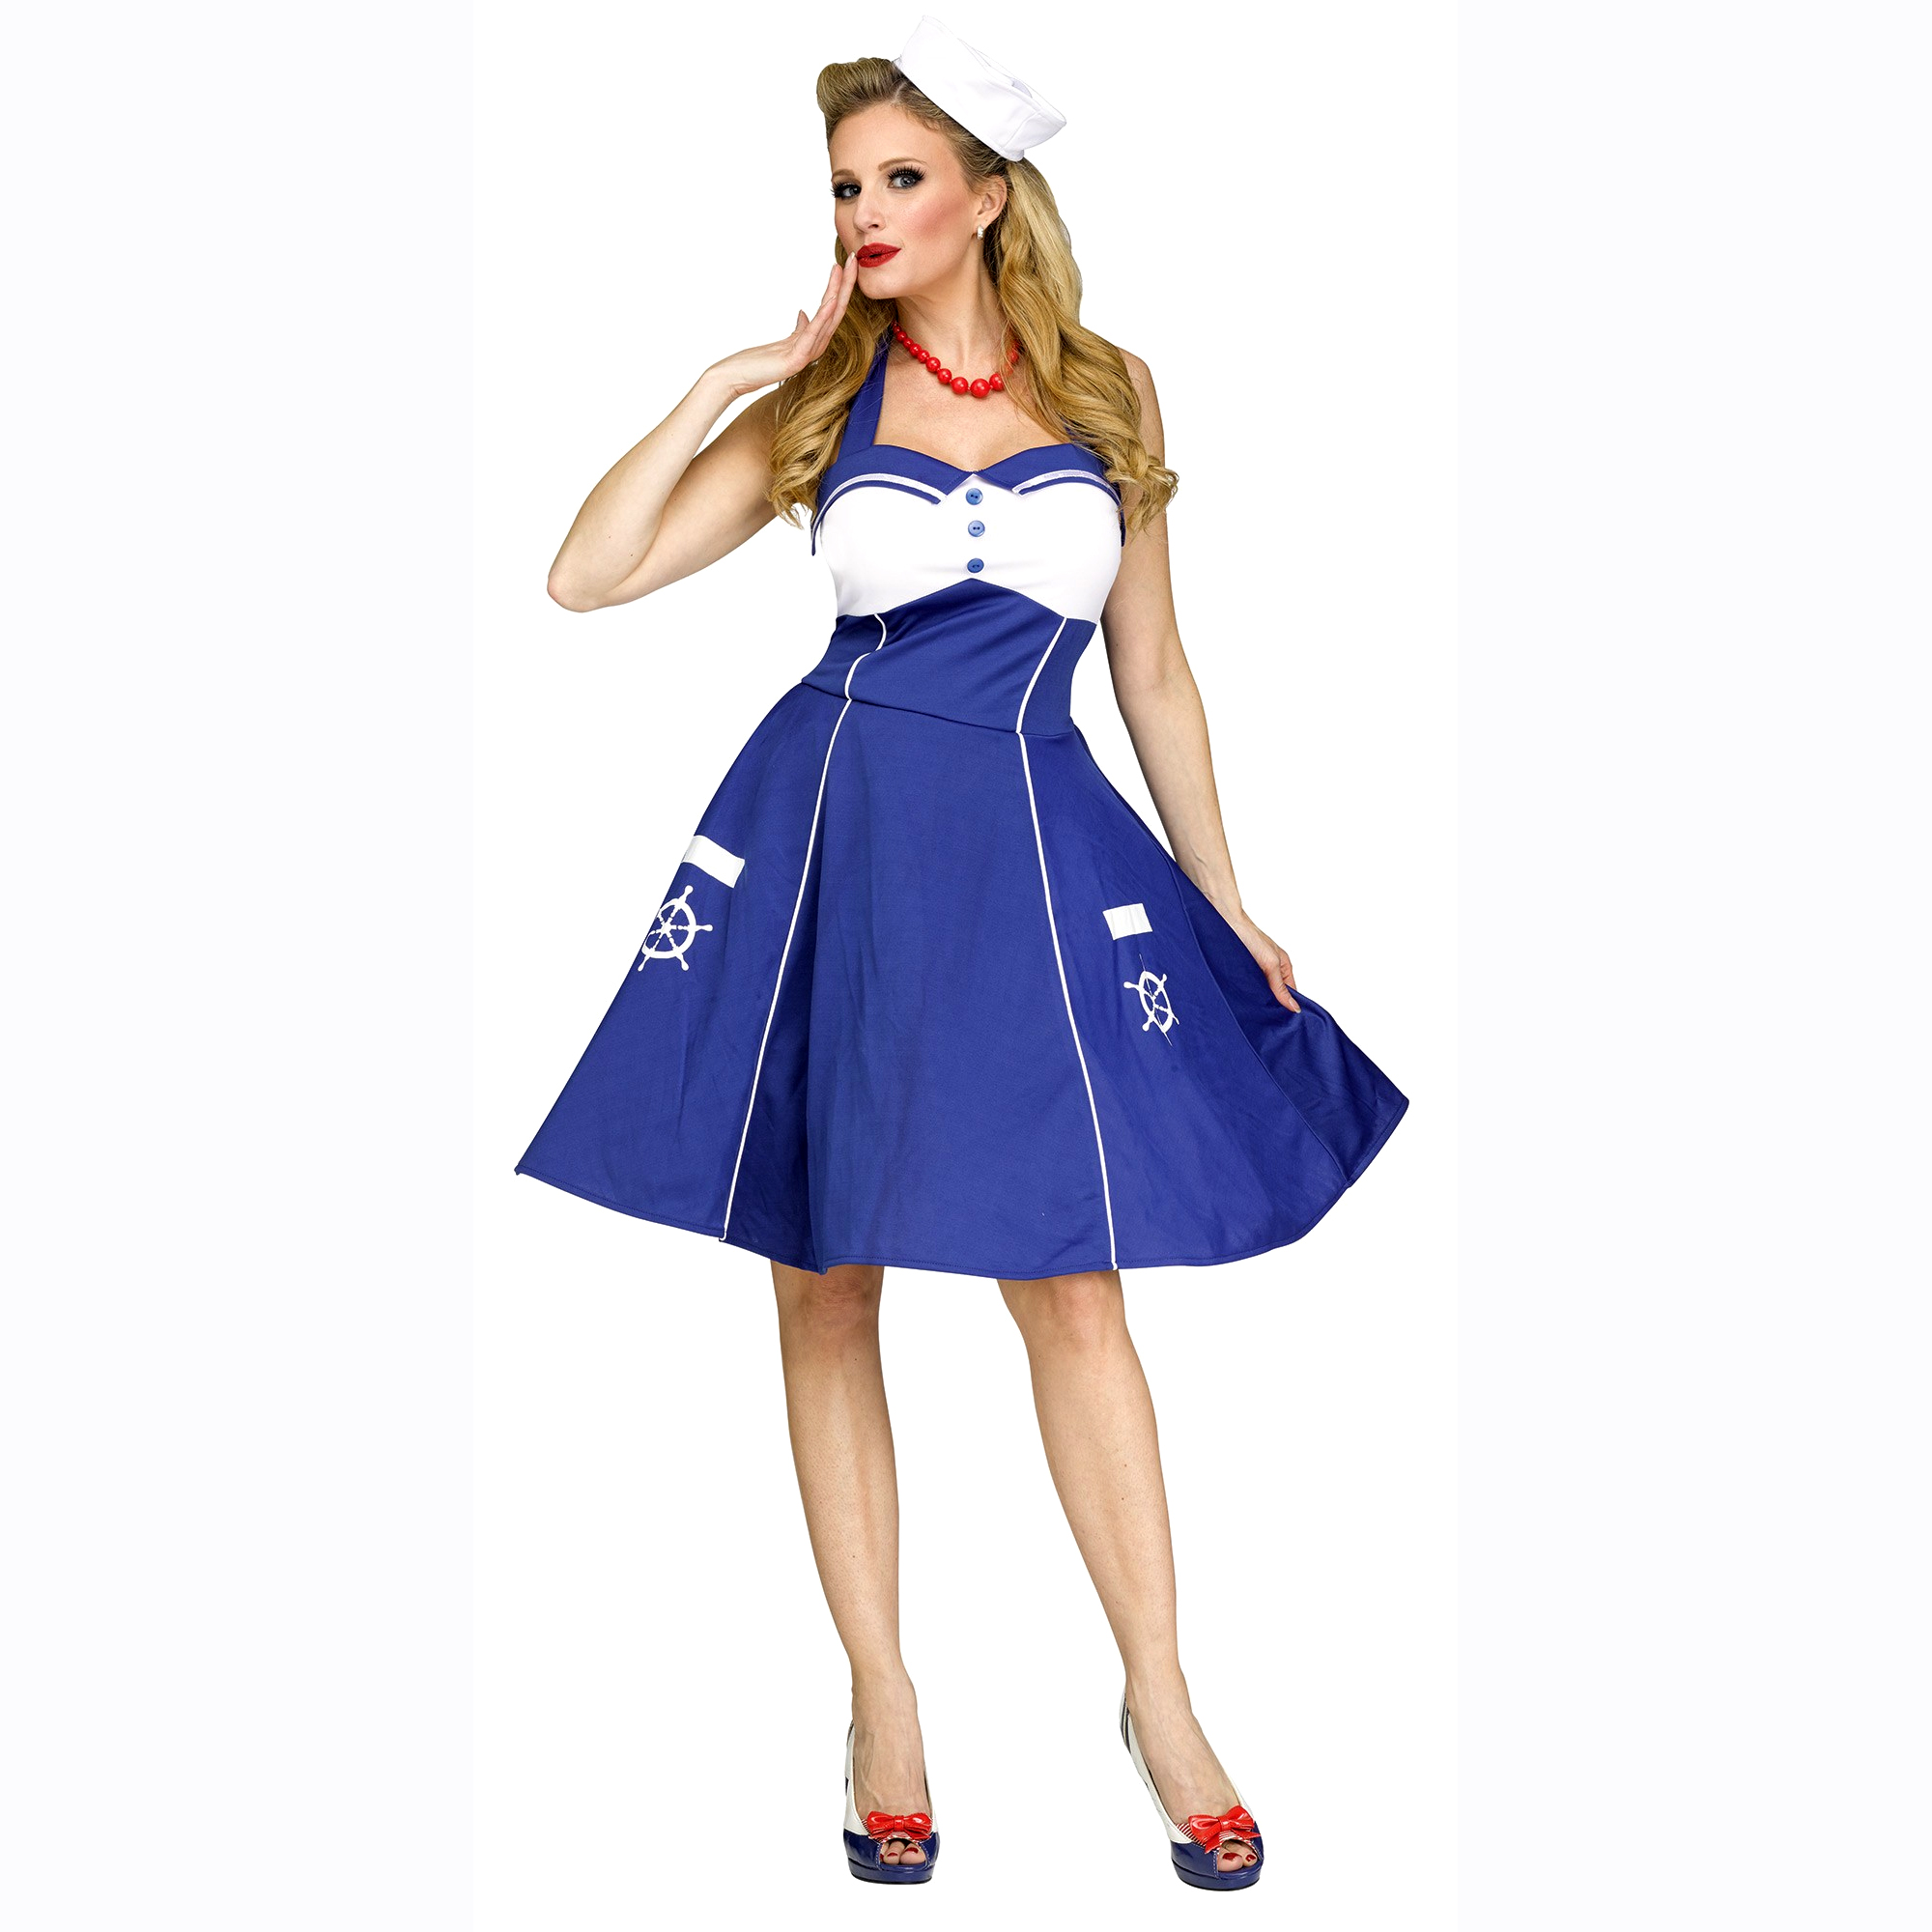 Sweet Sailin' 1940 Style Ladies Sailor Dress